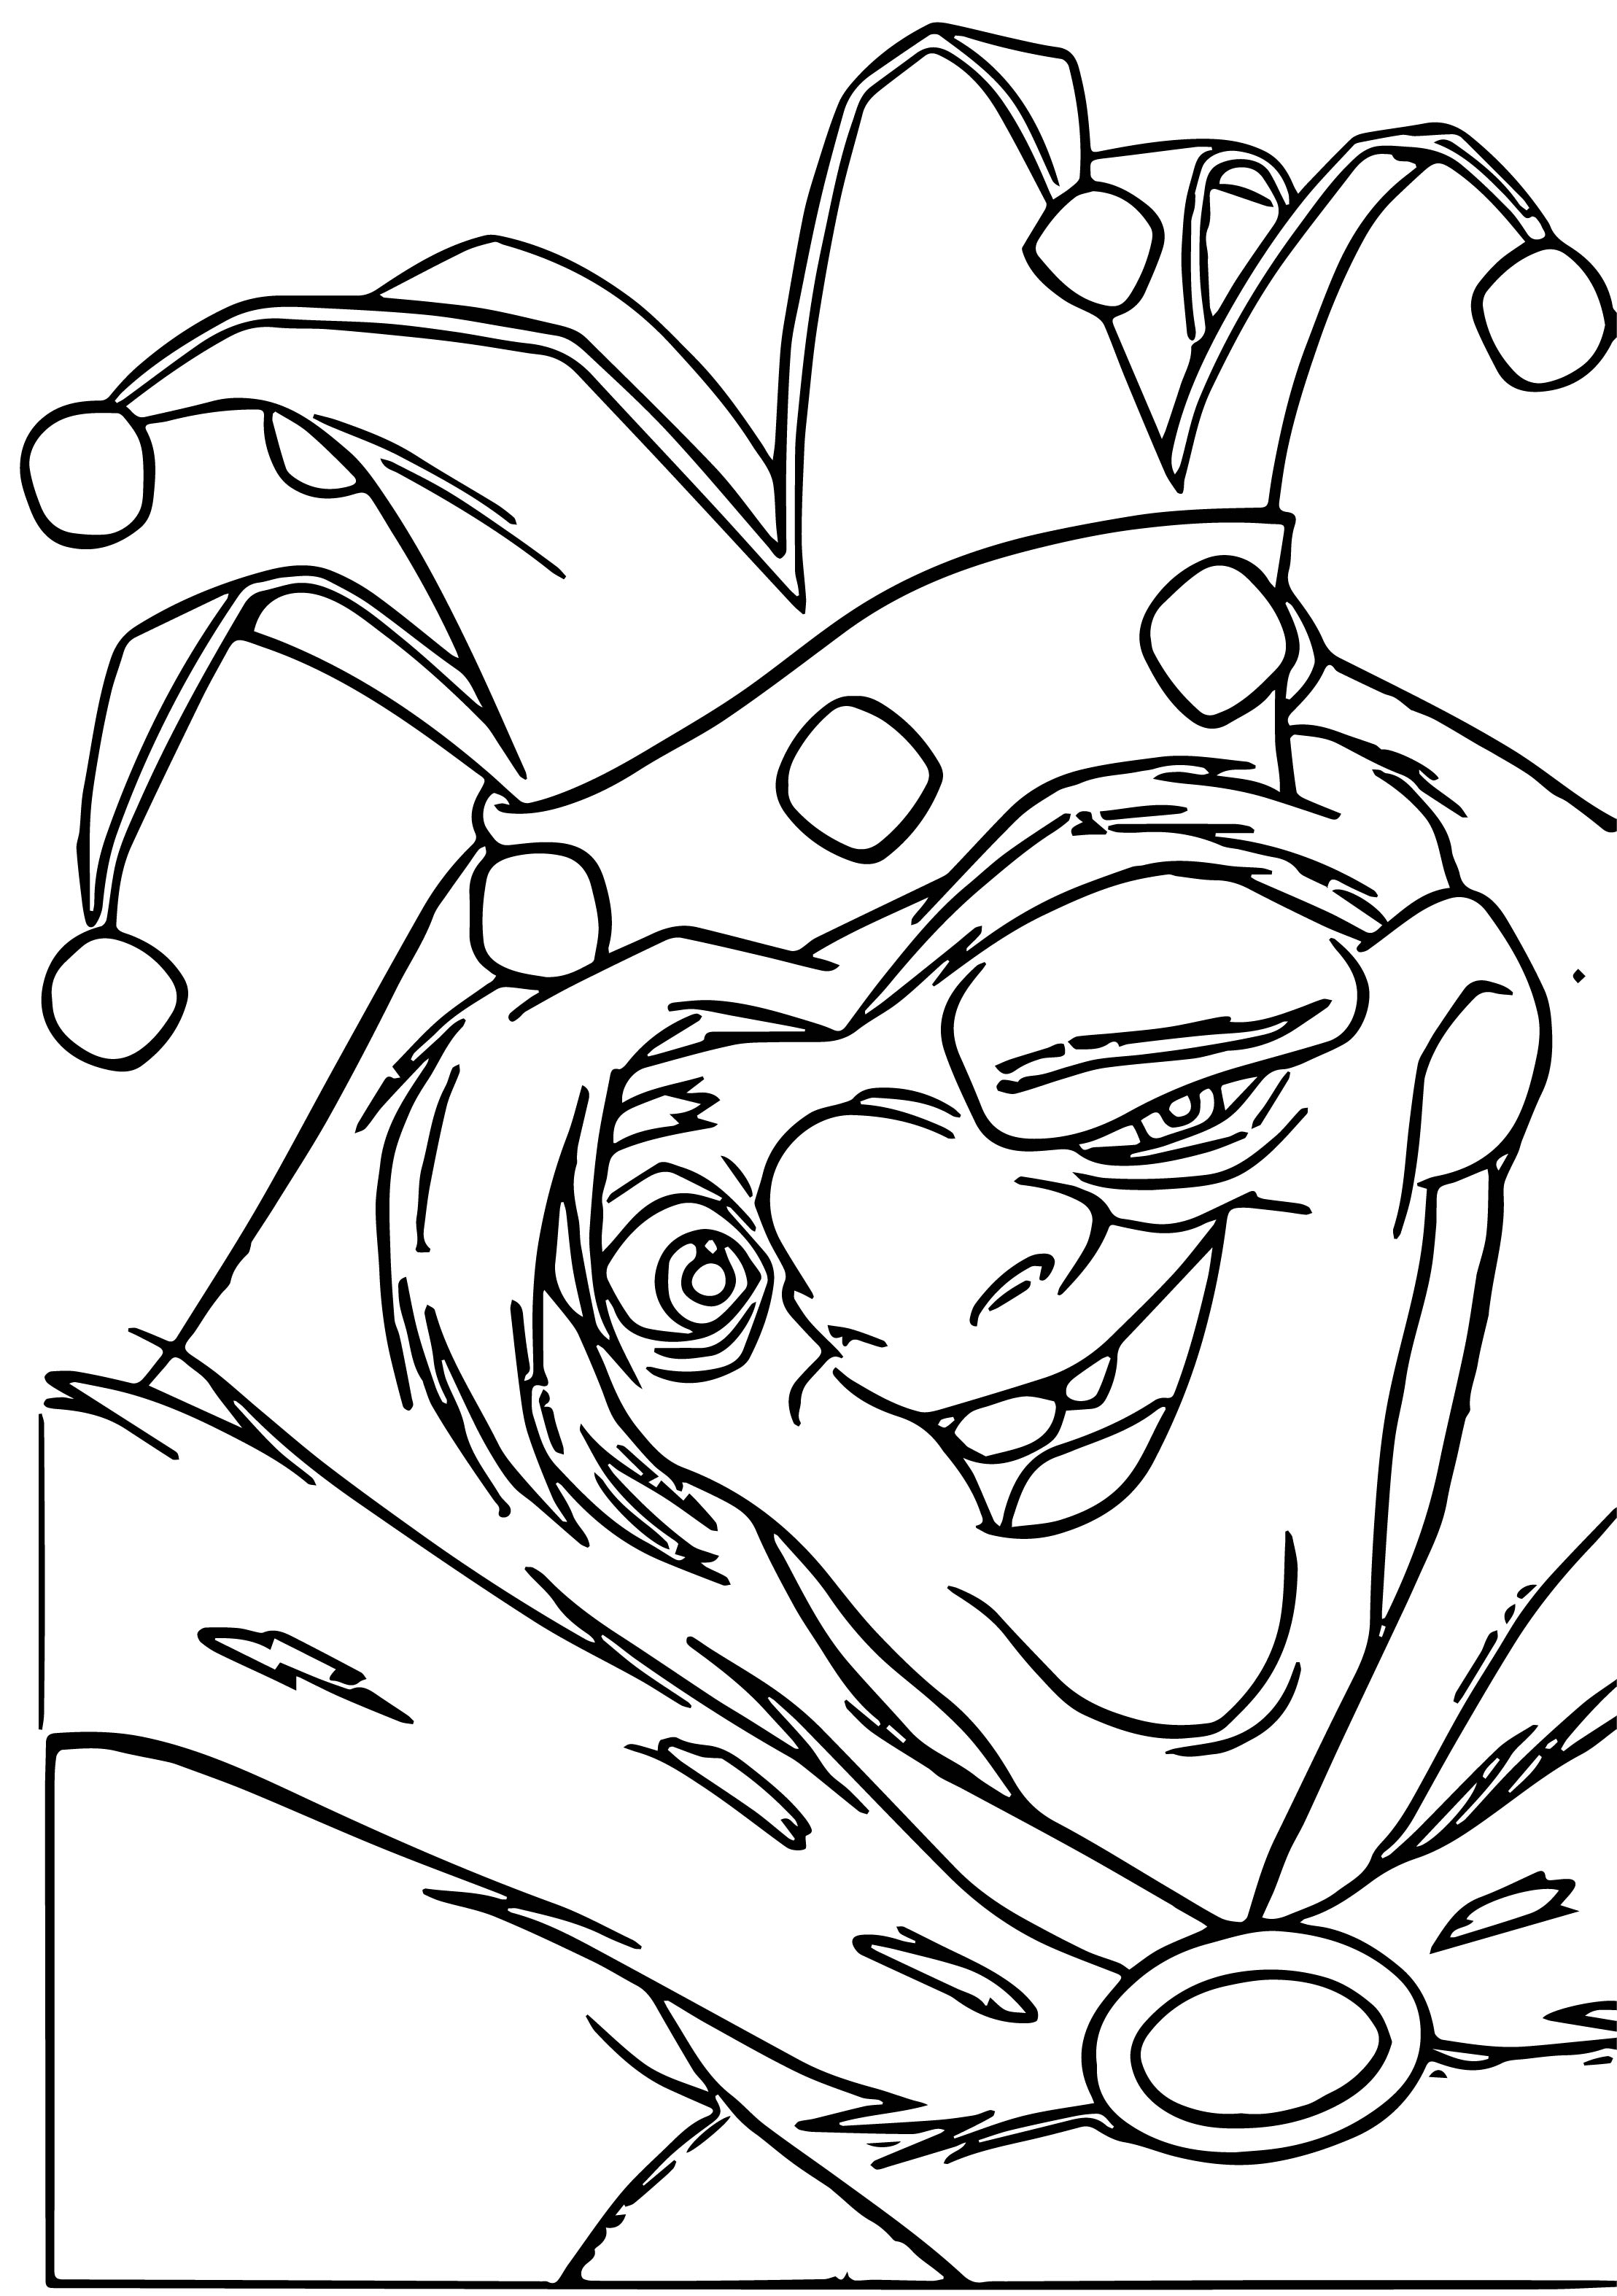 The Hunchback Of Notre Dame Quasi 6 Cartoon Coloring Pages